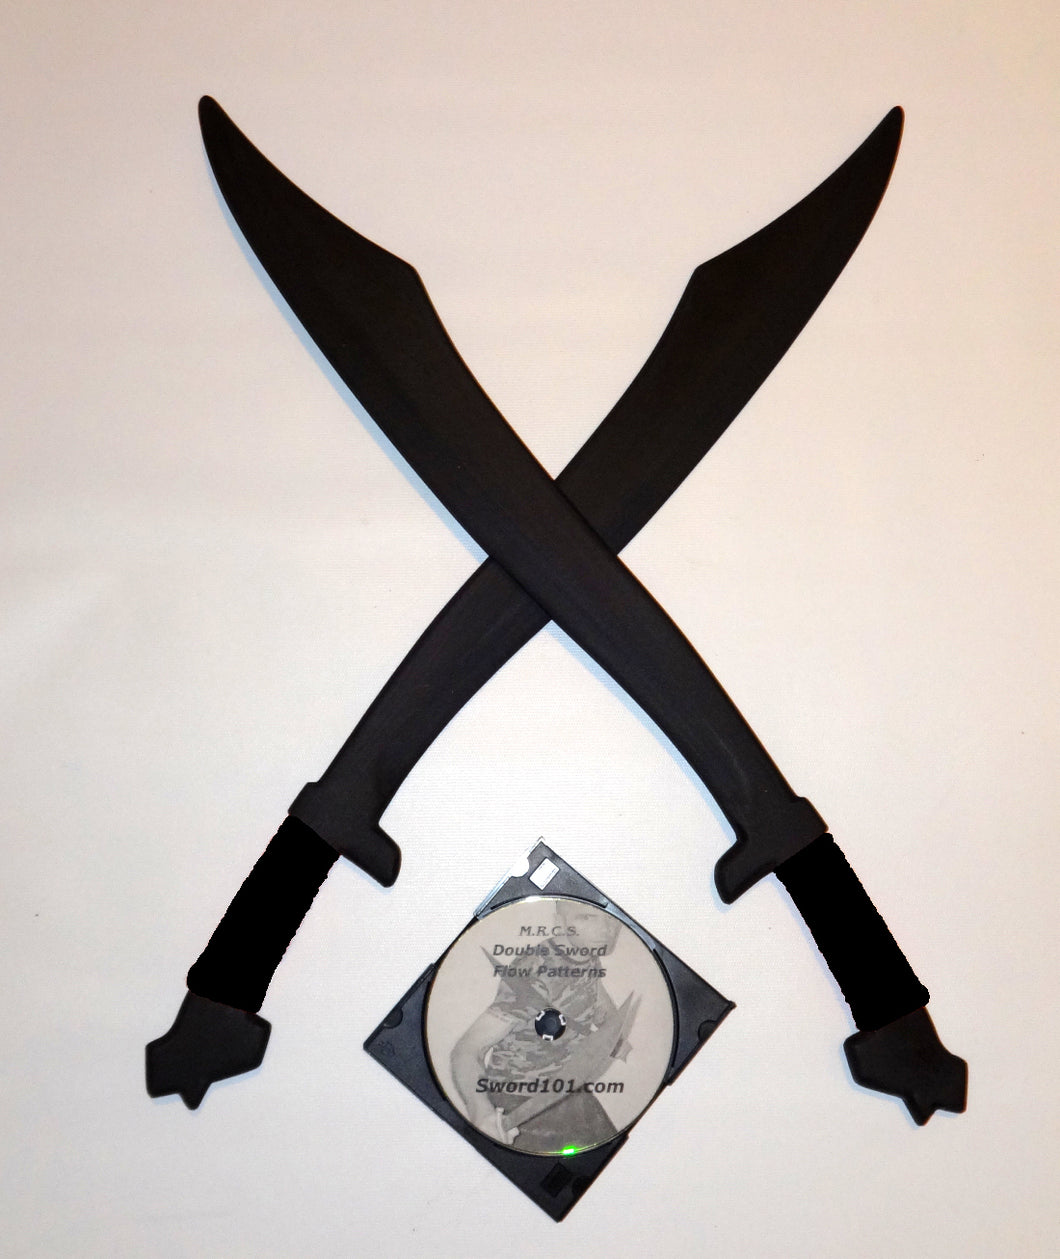 Philippines Practice Swords Filipino Polypropylene Training Instruction DVD Kali Arnis Black